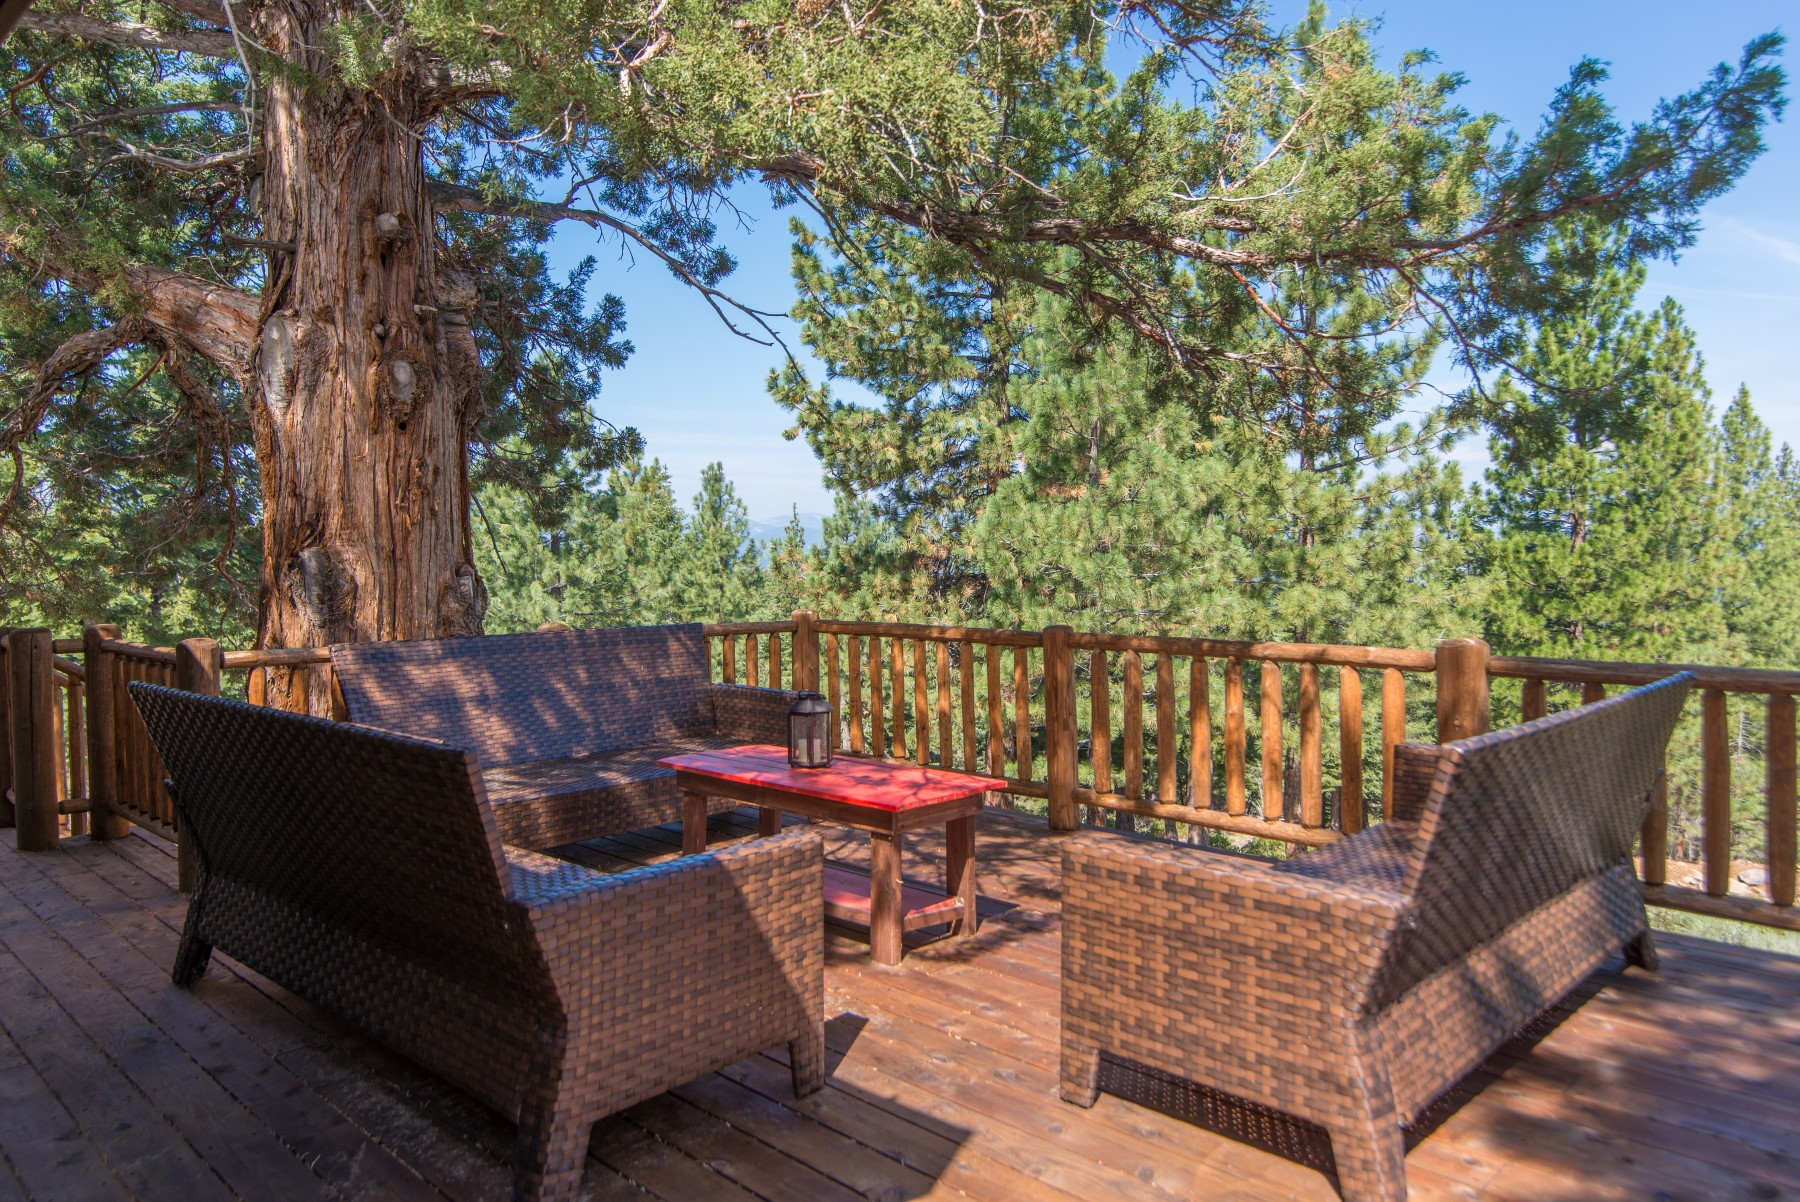 Single Family Home for Active at 13834 Martis Peak Road Truckee, California 96161 United States